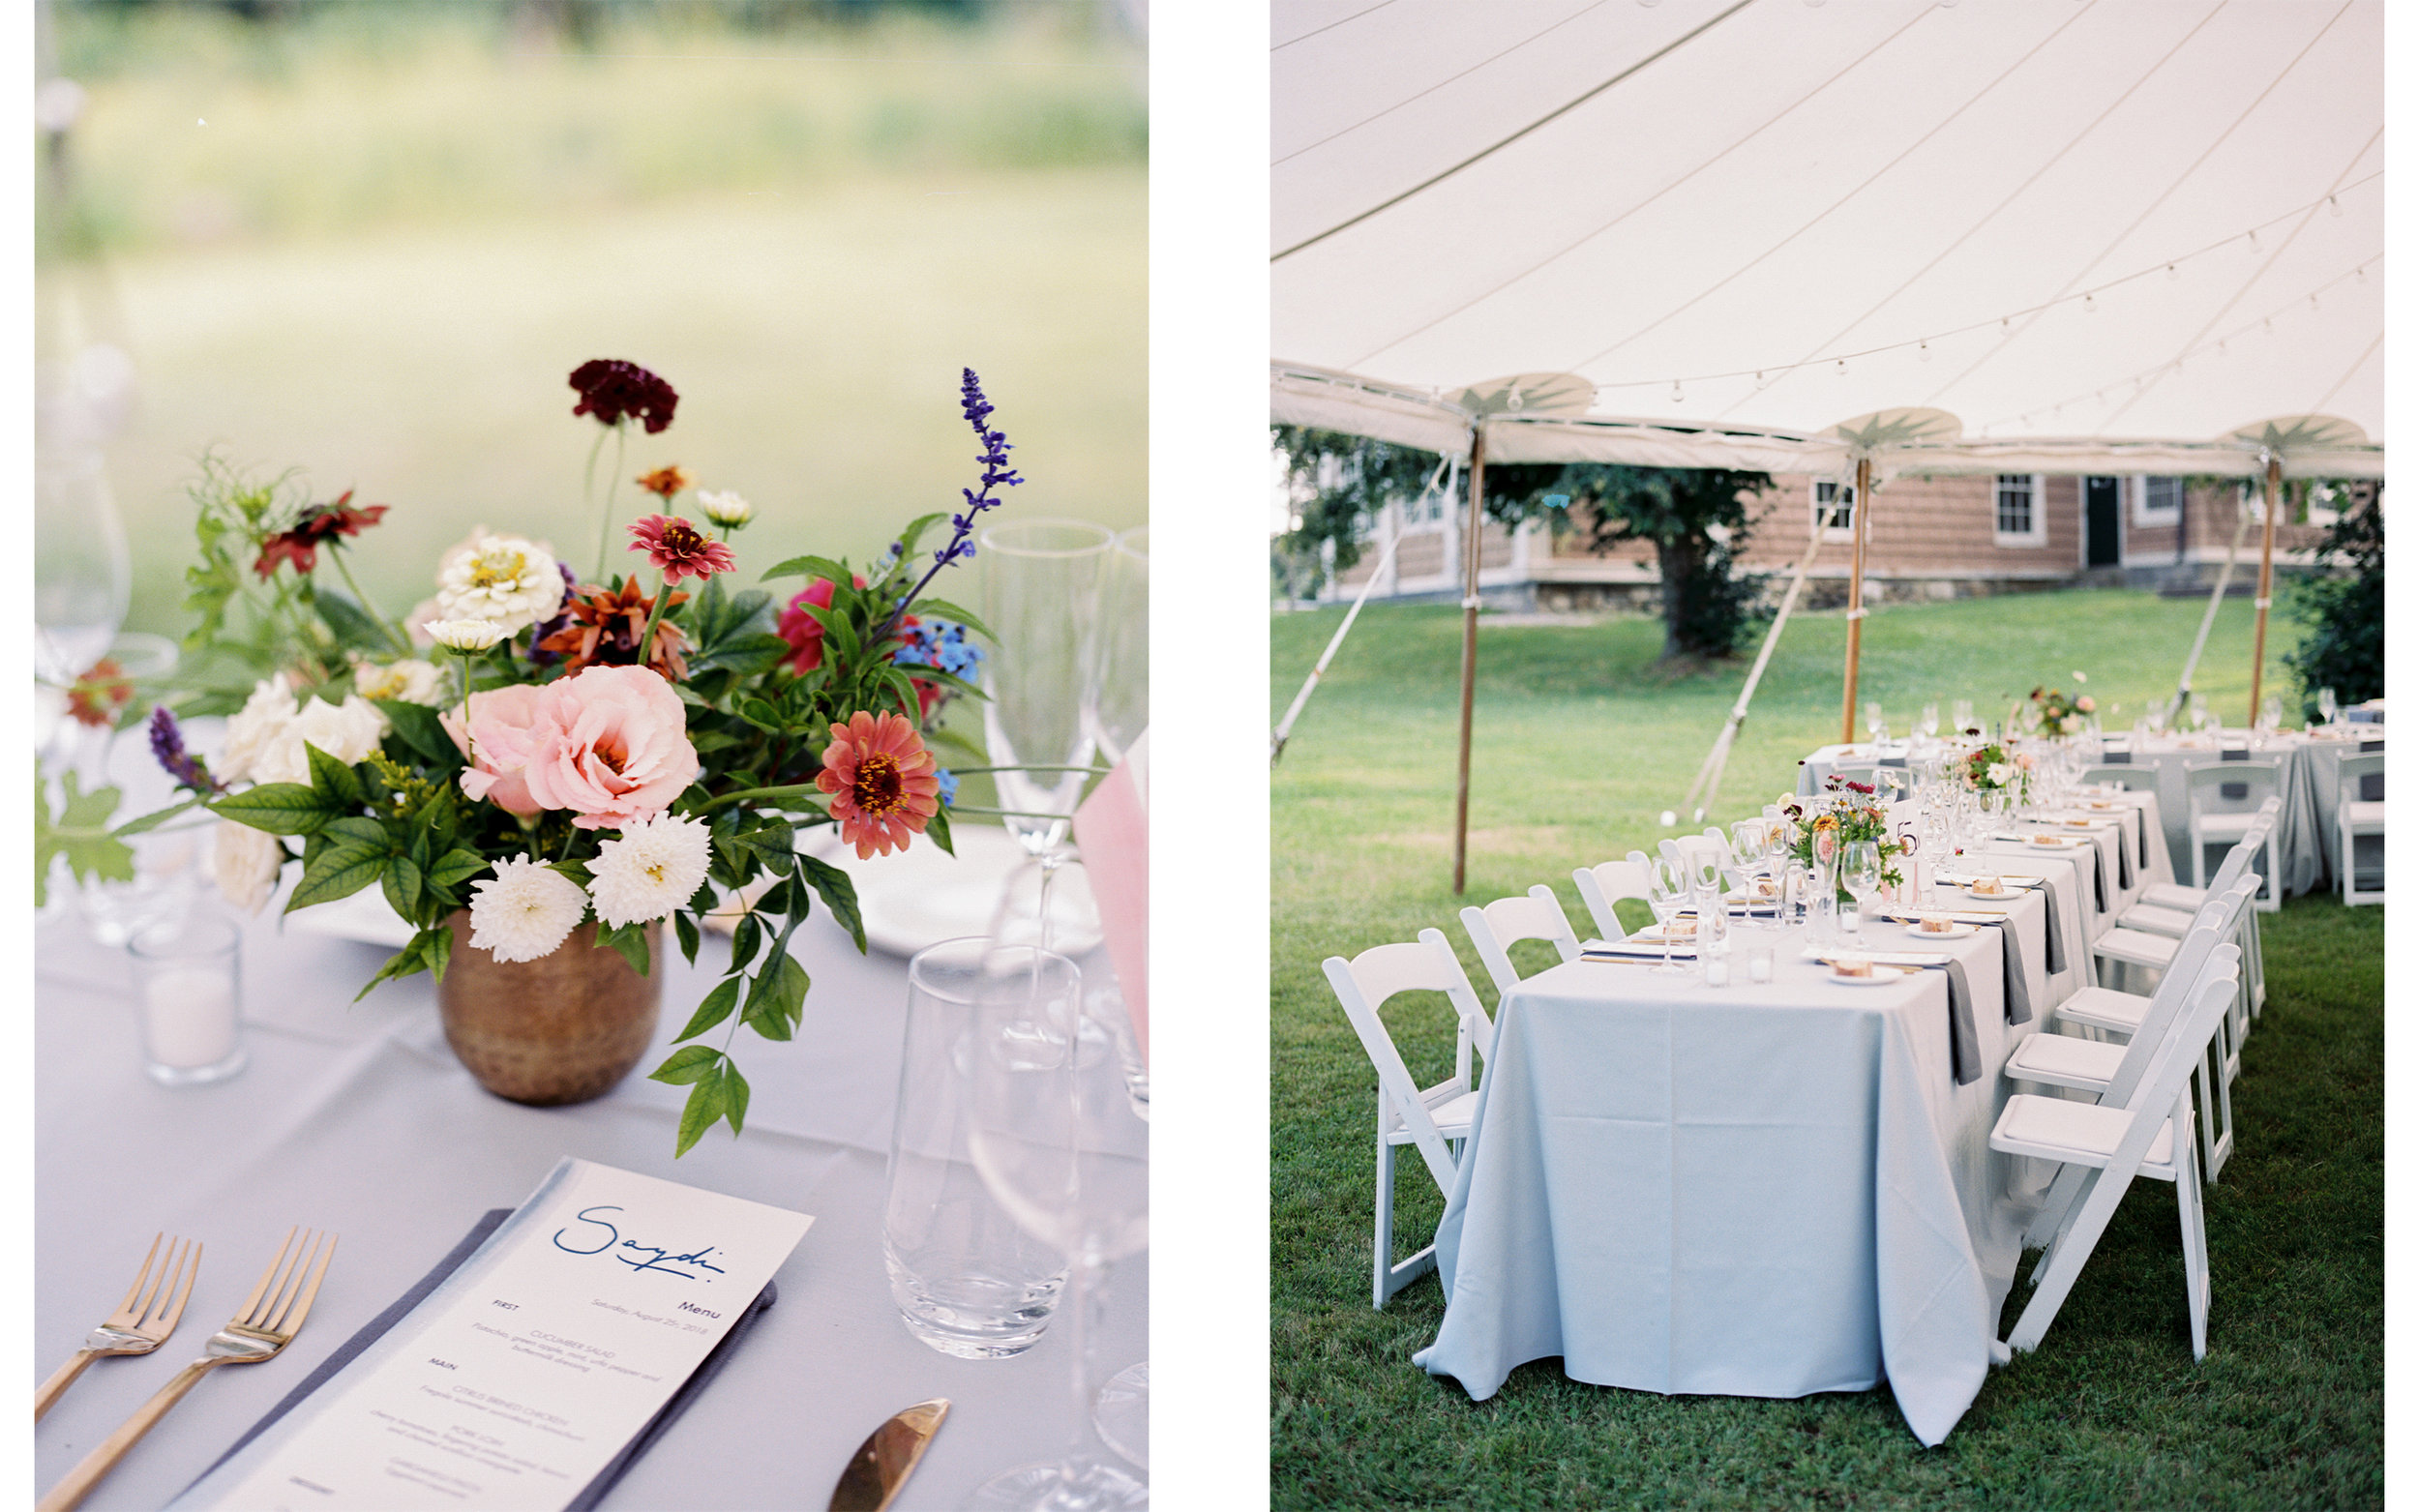 Berkshires Wedding Fine Art Wedding Photographer_Meg Haley Photographs_040.jpg